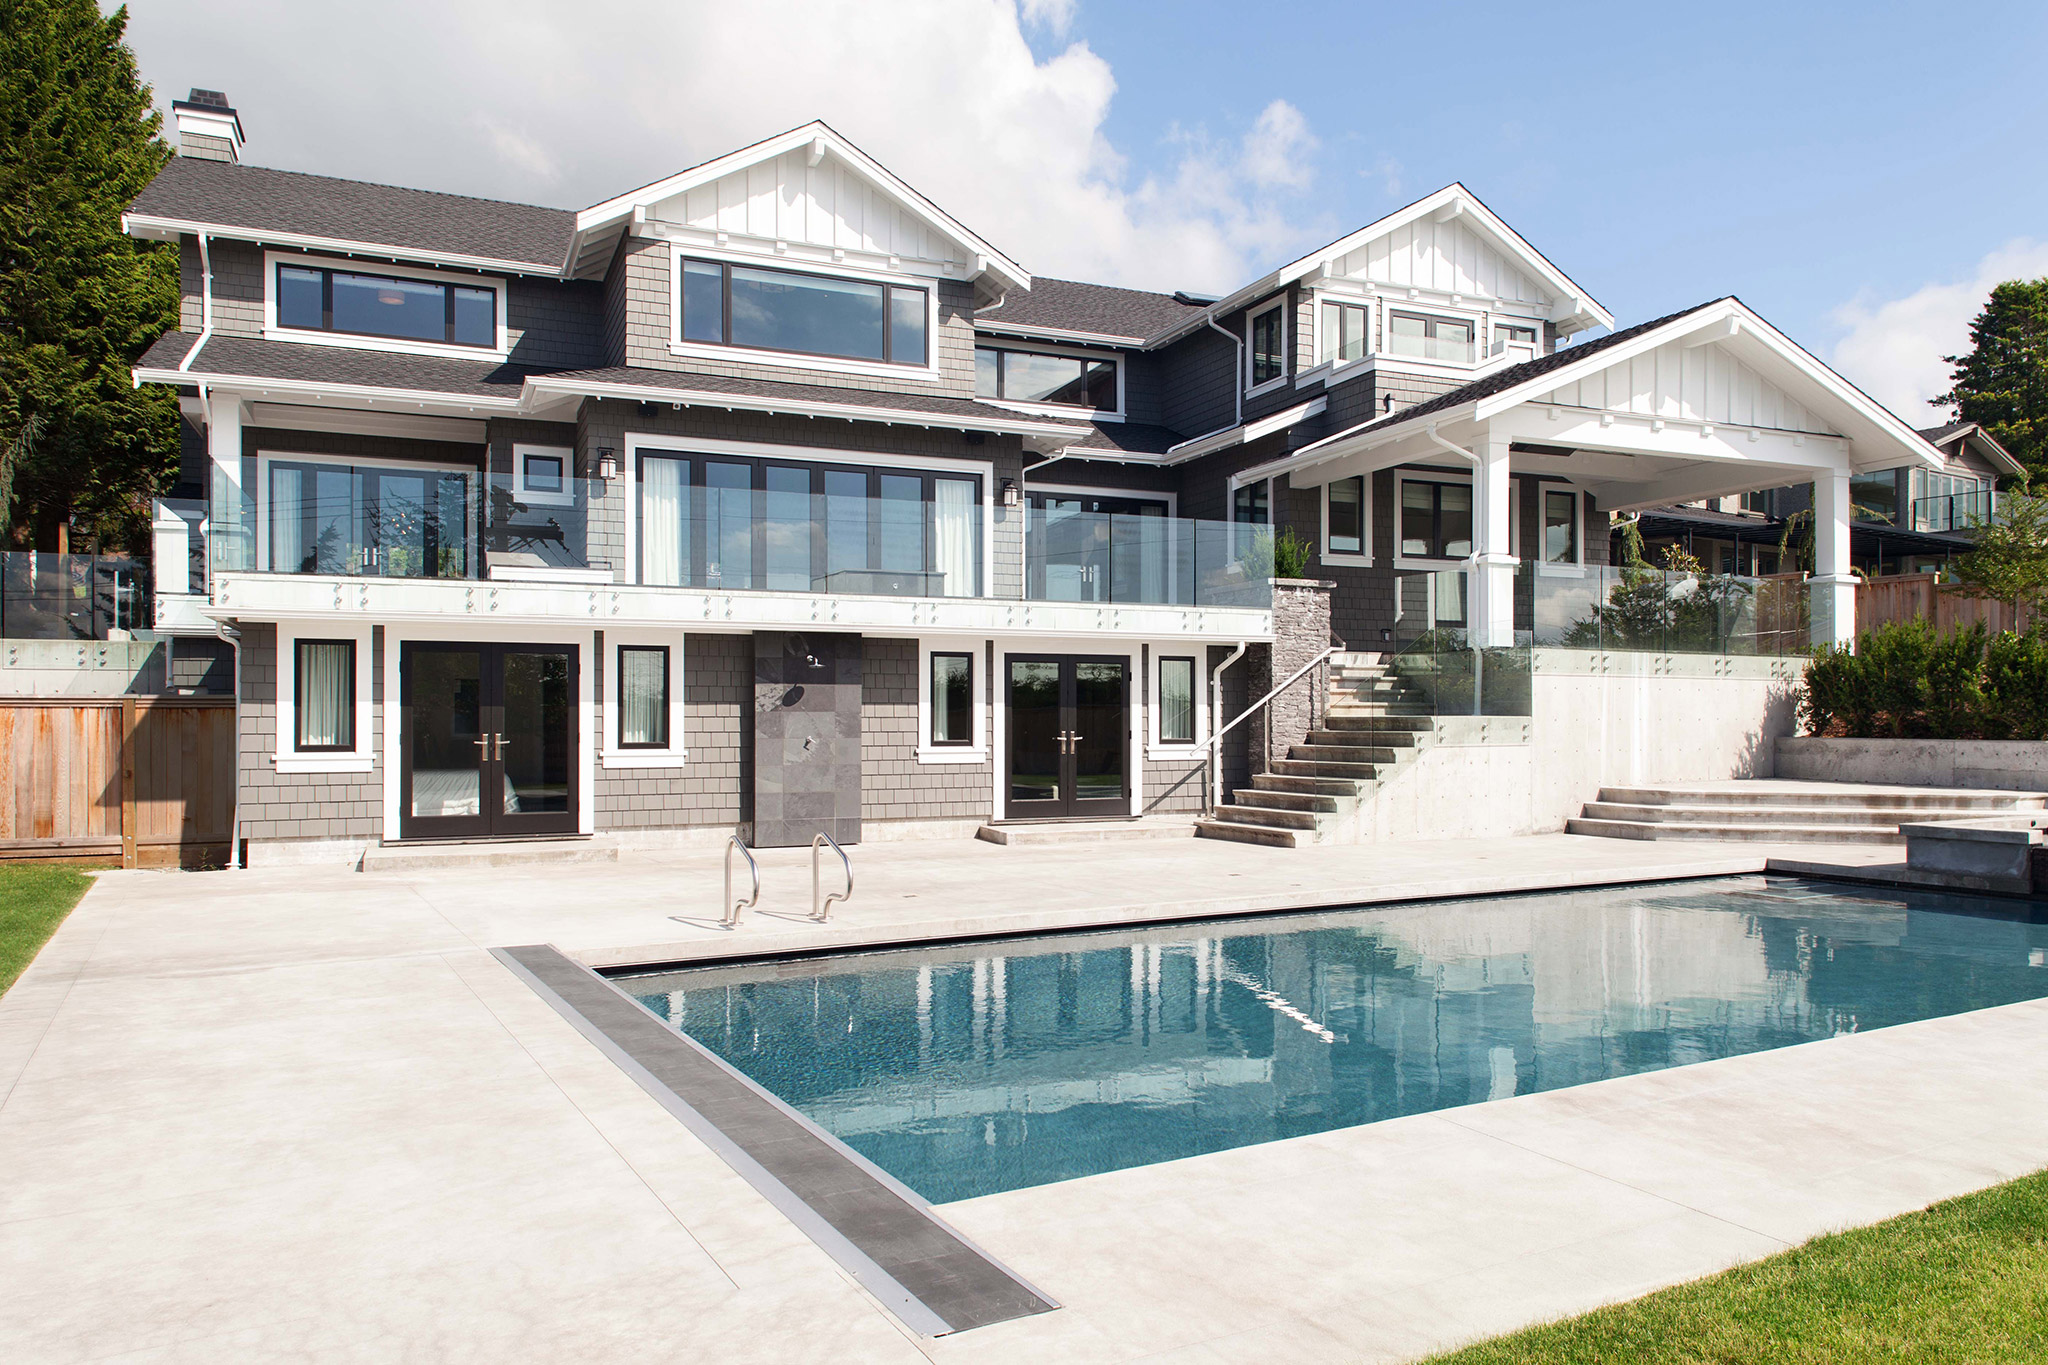 Eyremont west vancouver architect craftsman house pool for Pool design vancouver